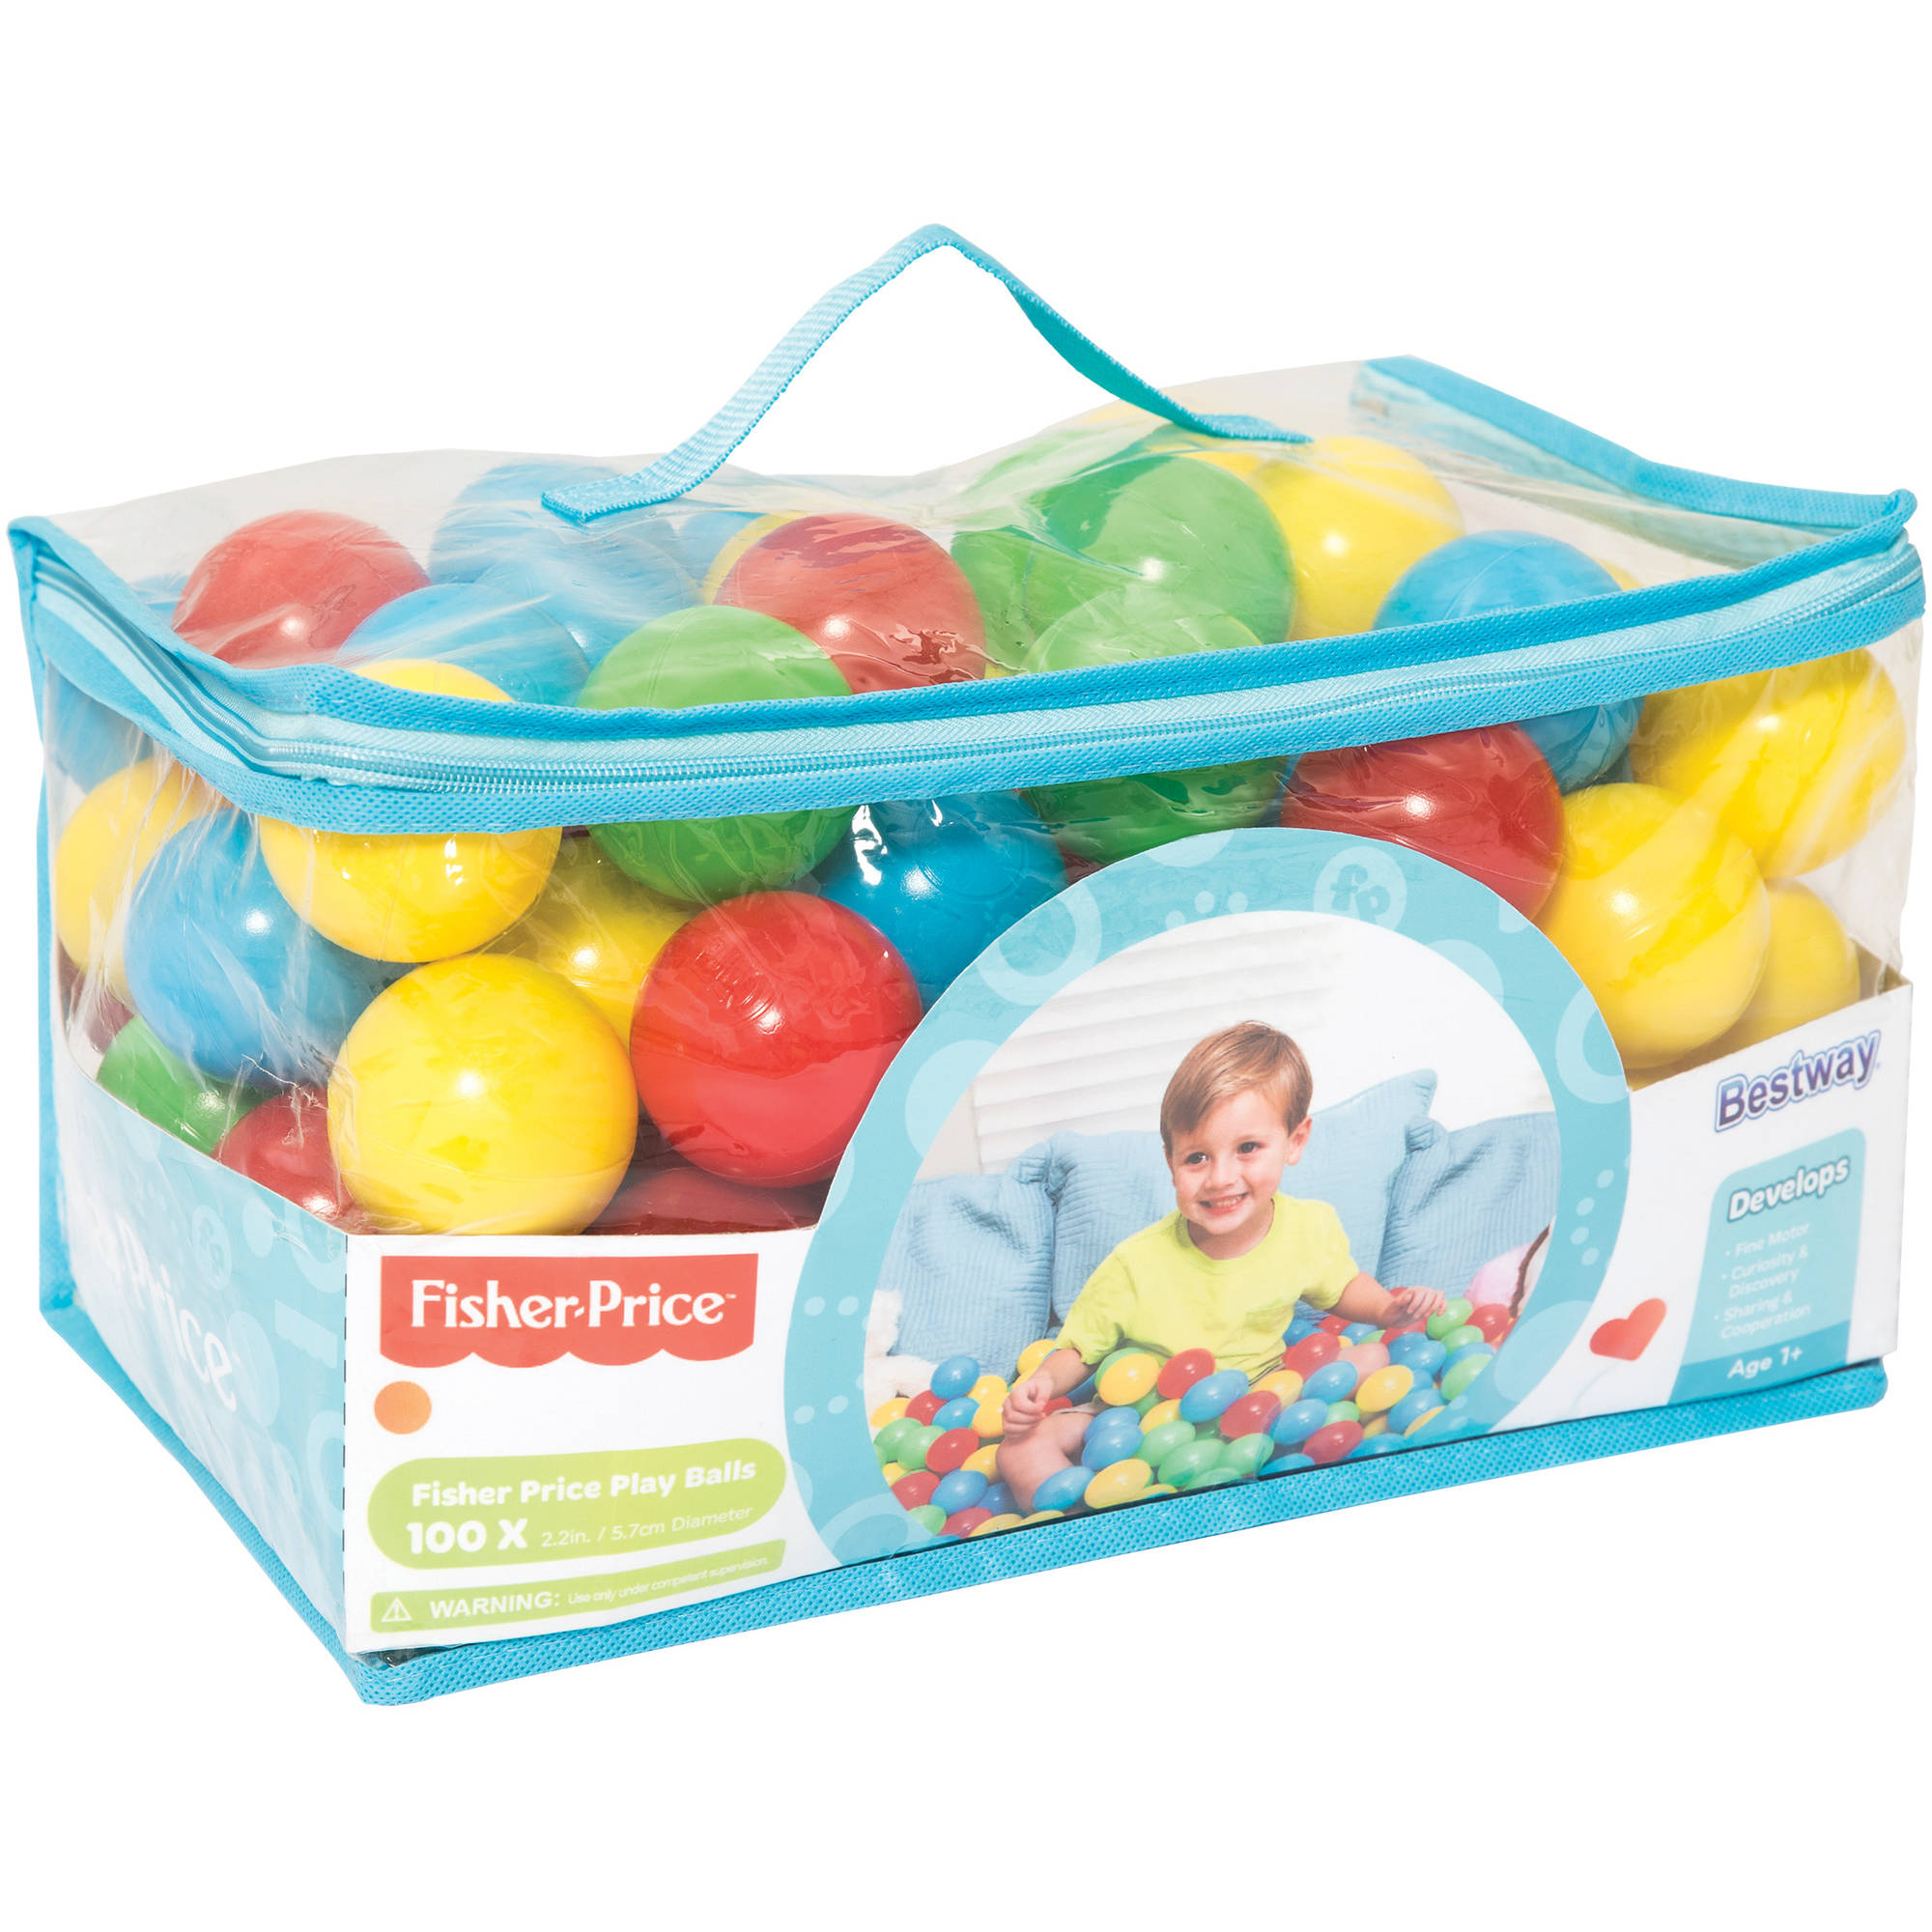 "Fisher-Price Play Balls, 2.2"", Pack of 100"